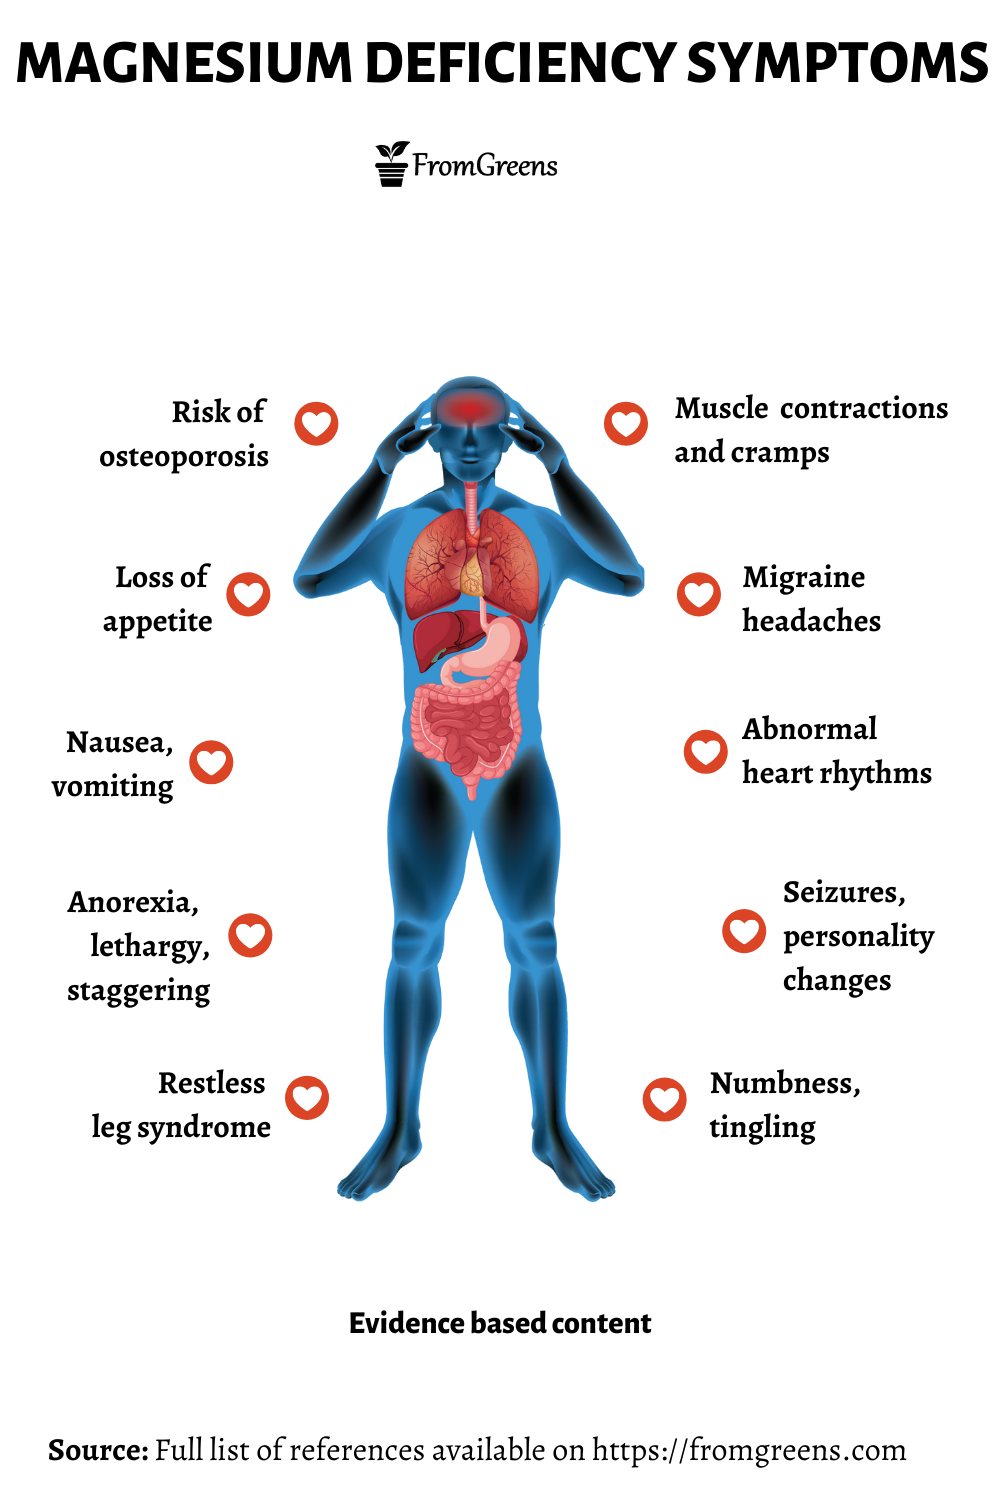 Magnesium deficiency symptoms - Evidence based content